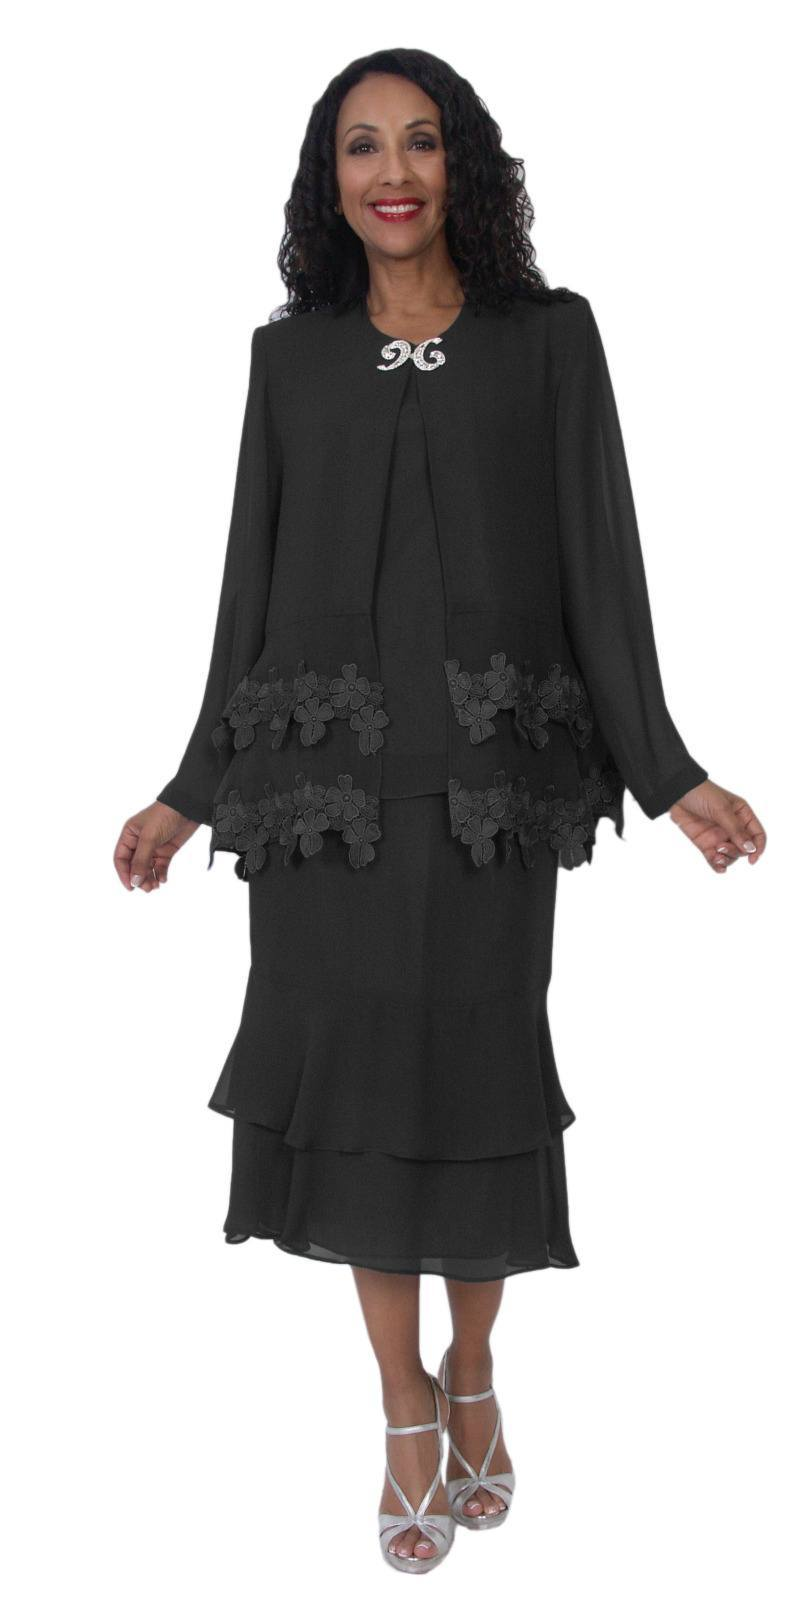 c35de7e5675 ... Hosanna 5107 Plus Size 3 Piece Set Black Tea Length Dress ...